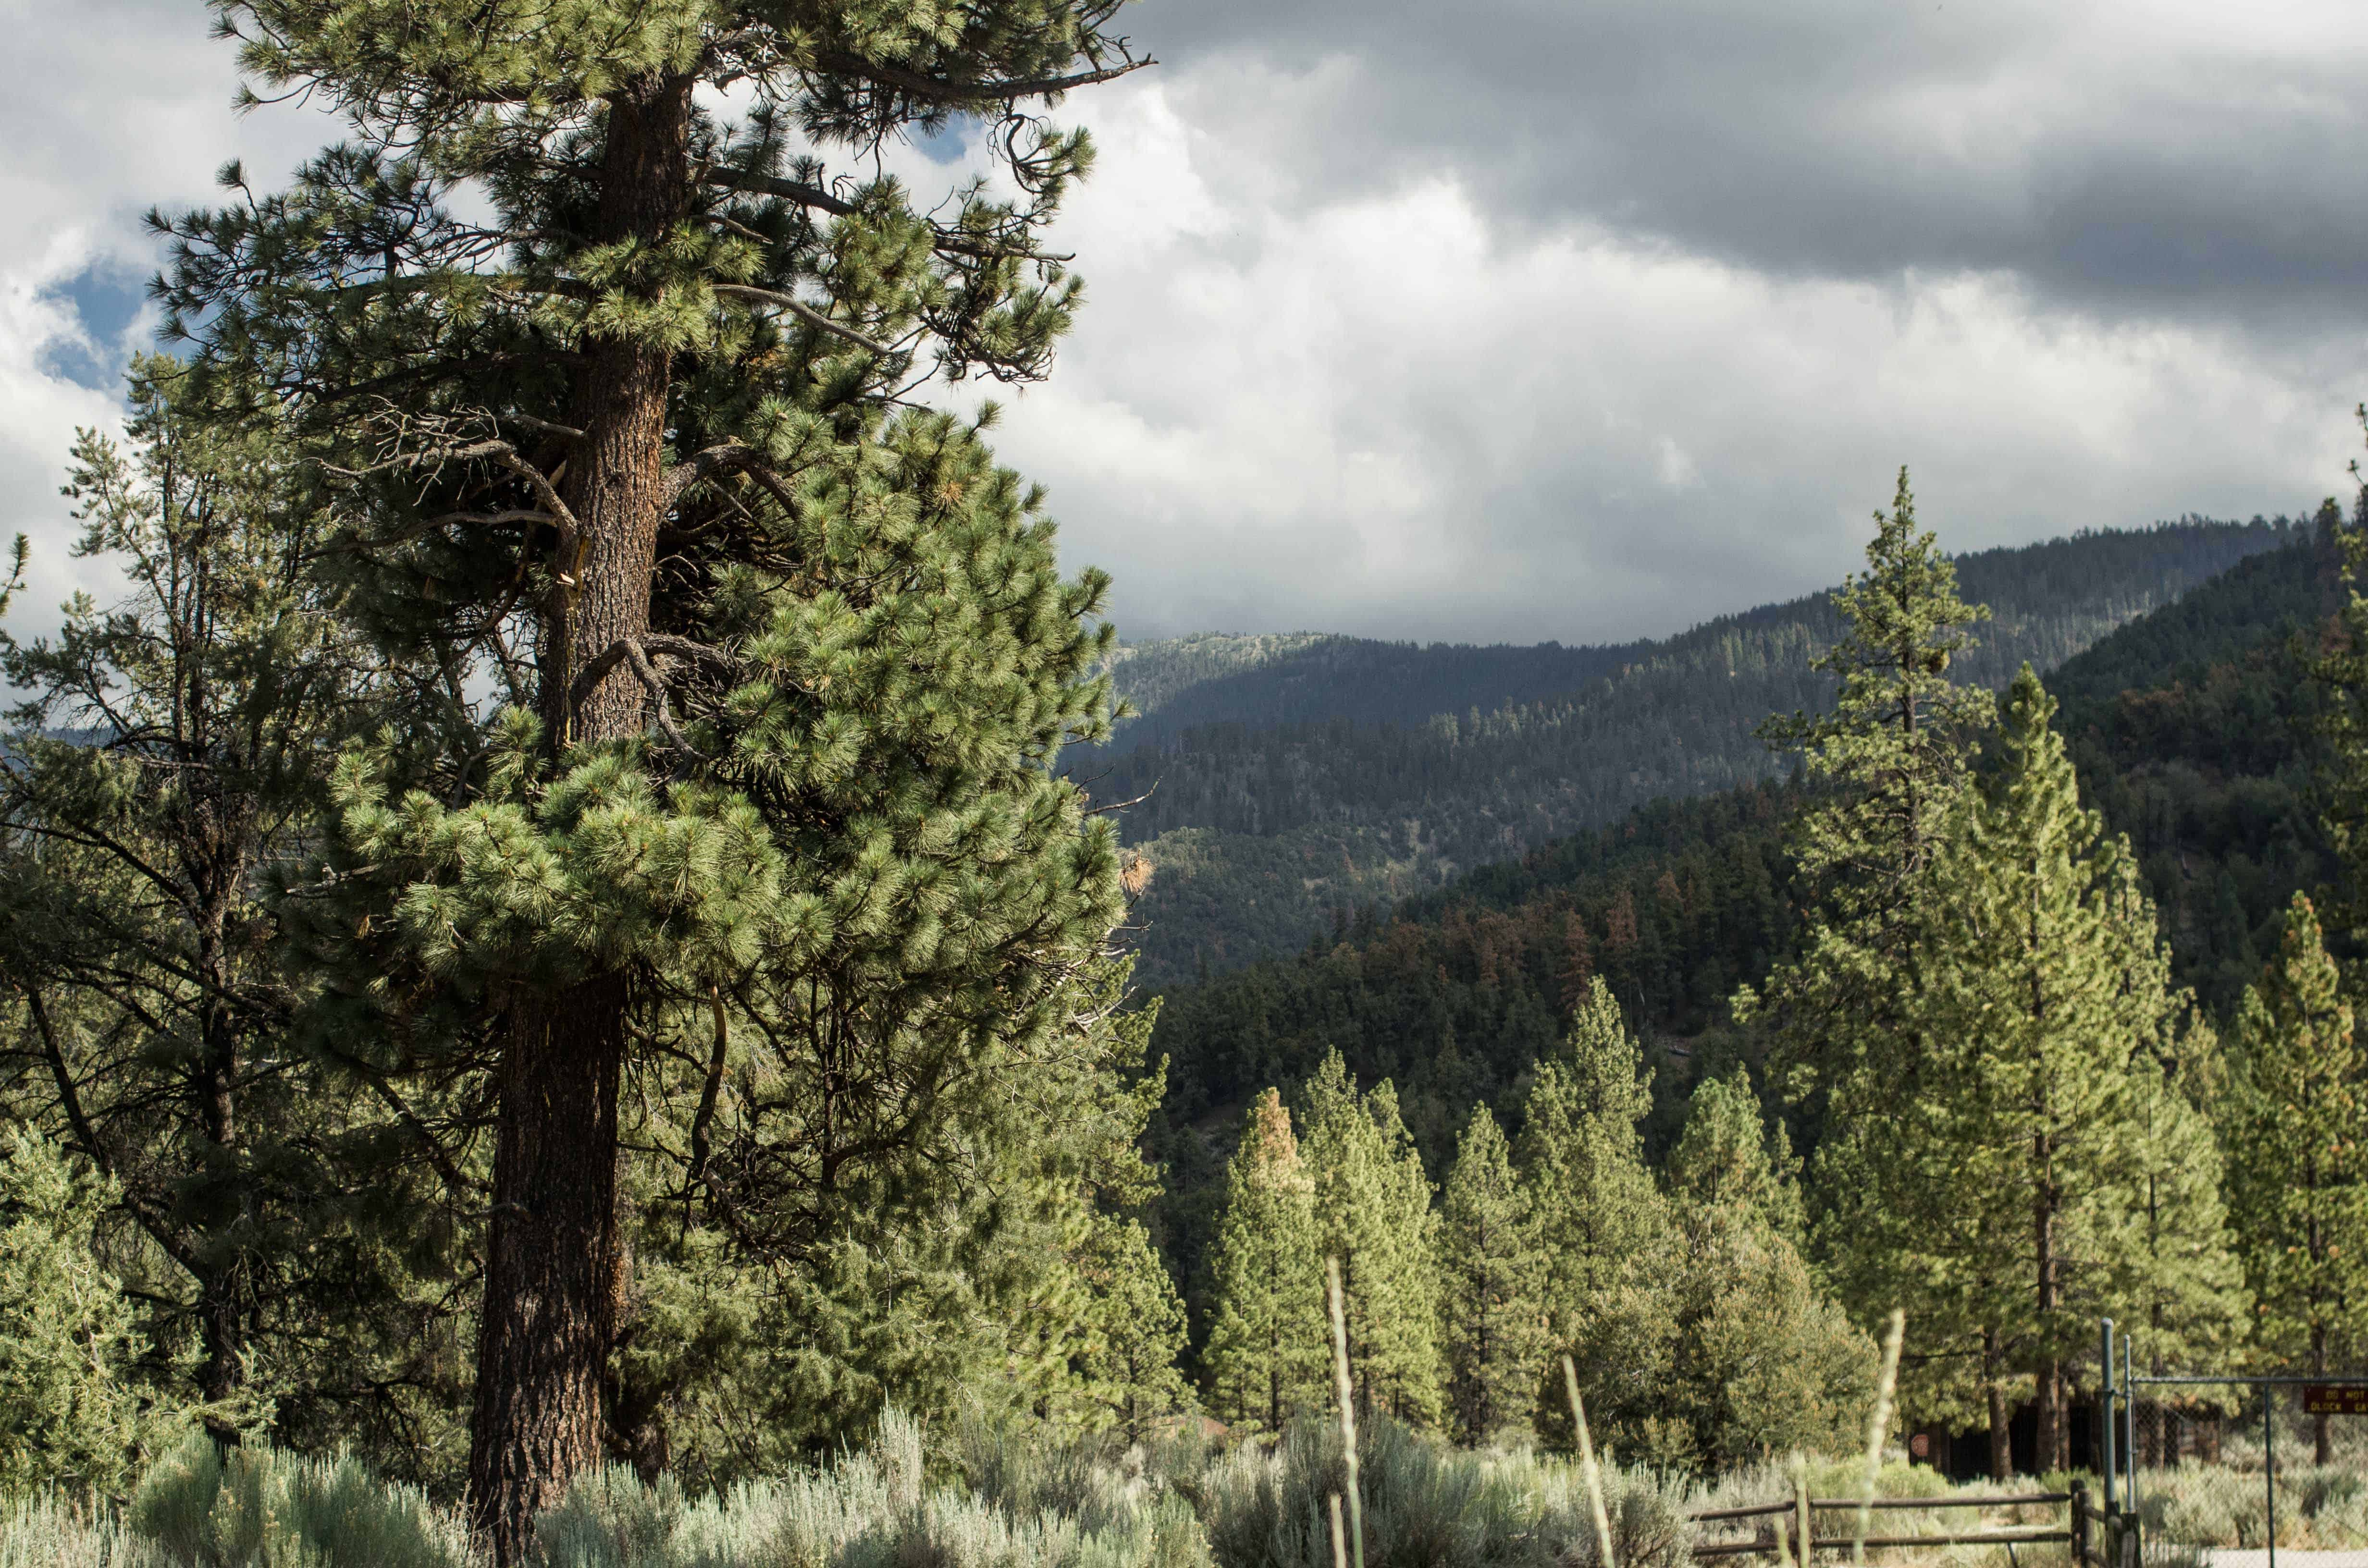 pine mountain club dating Find pine mountain club, ca real estate for sale today, there are 159 homes for sale in pine mountain club at a median listing price of $295,000.